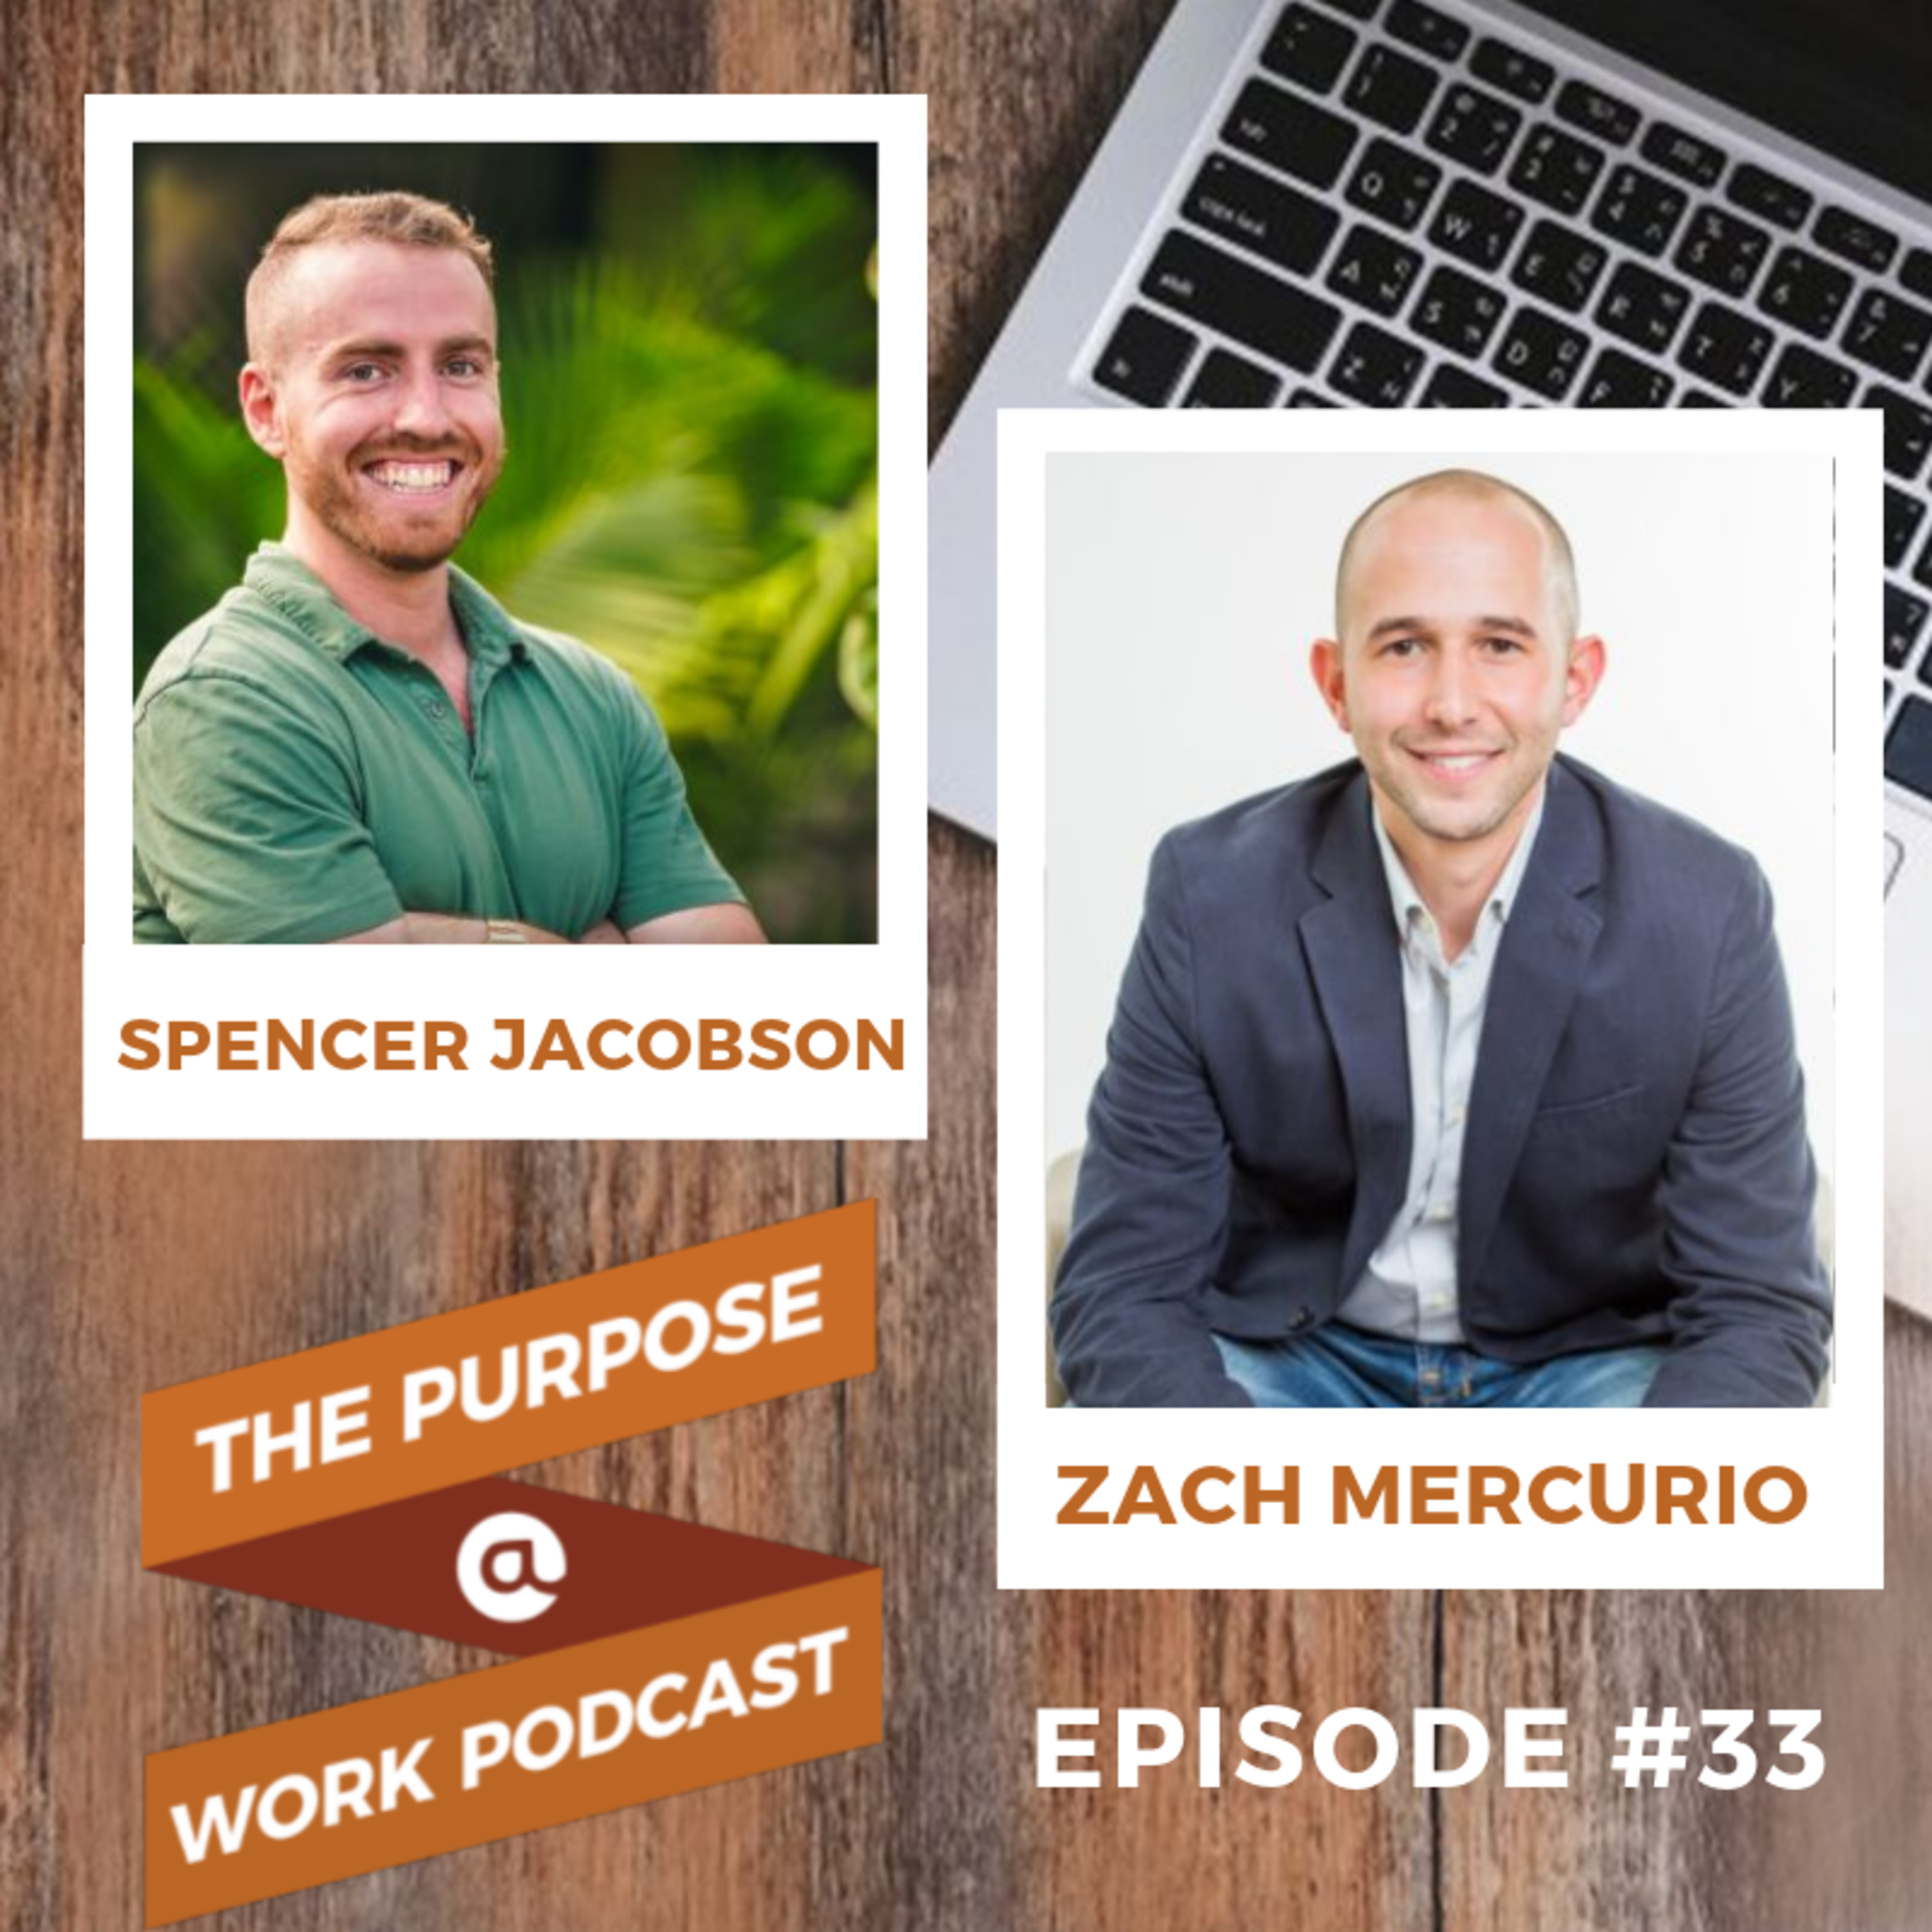 #33 Zach Mercurio - Purposeful Leadership and Meaningful Work Strategist: How purpose will transform your life, business and leadership